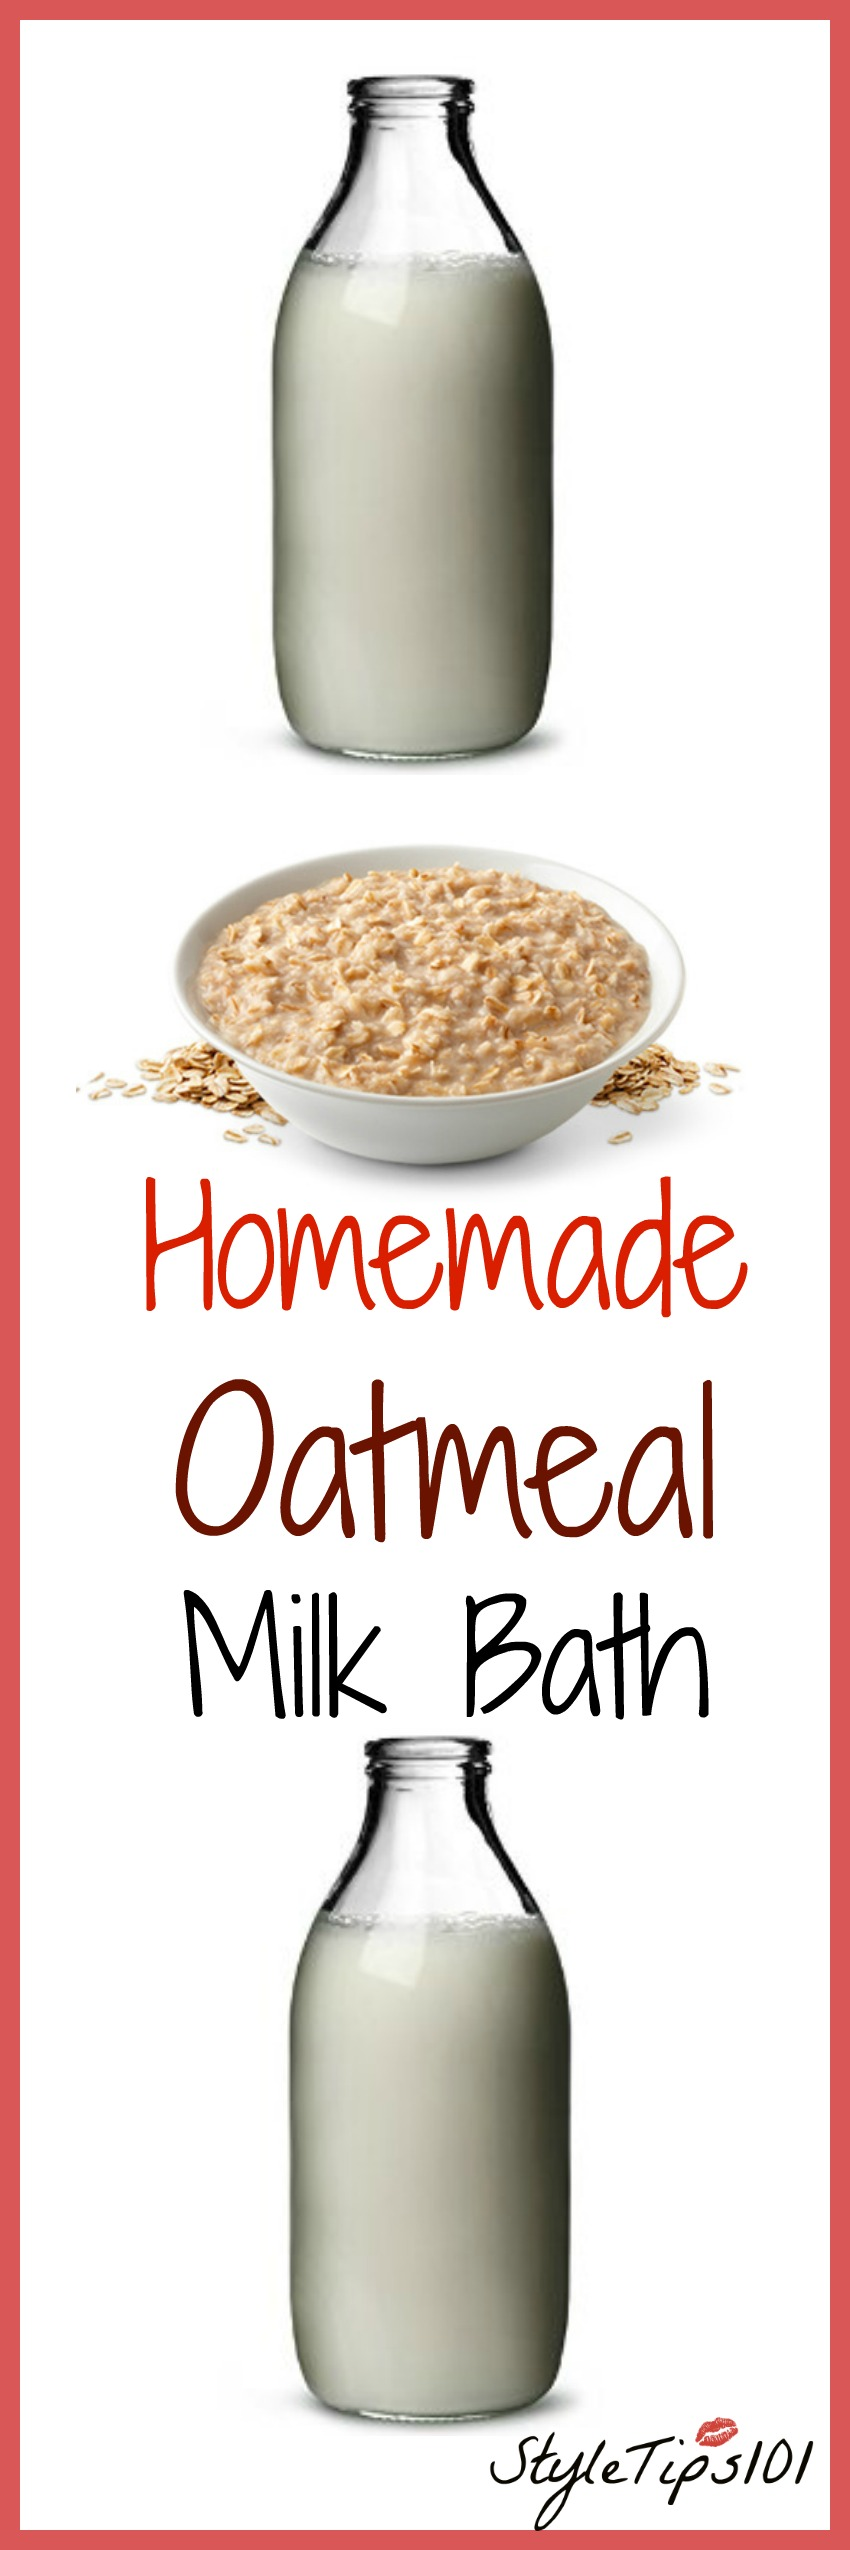 Homemade Oatmeal Milk Bath Recipe